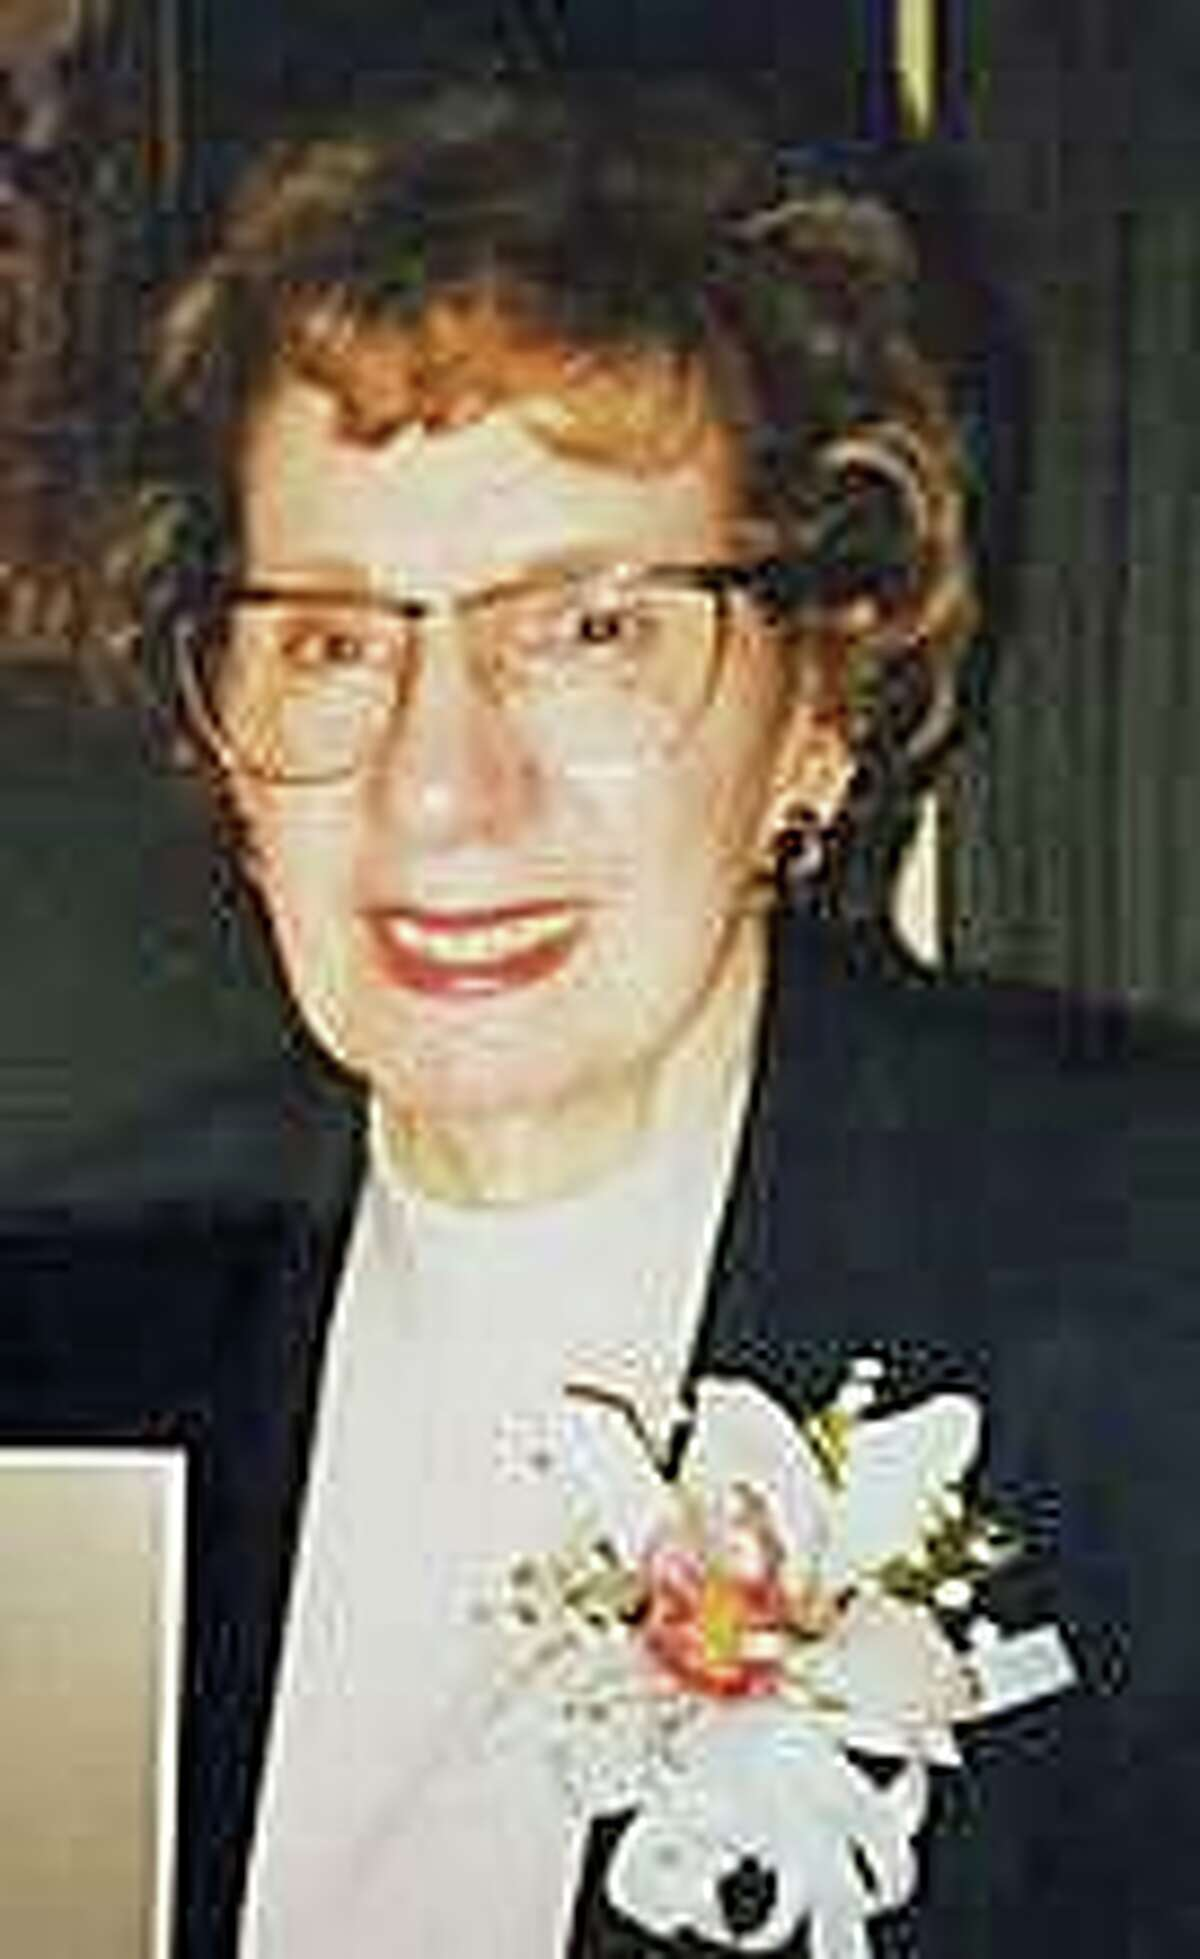 Phyllis Beatrice Antonetz, a 103-year-old Fairfield woman died on April 17, 2020 due to complications of the coronavirus, according to her obituary